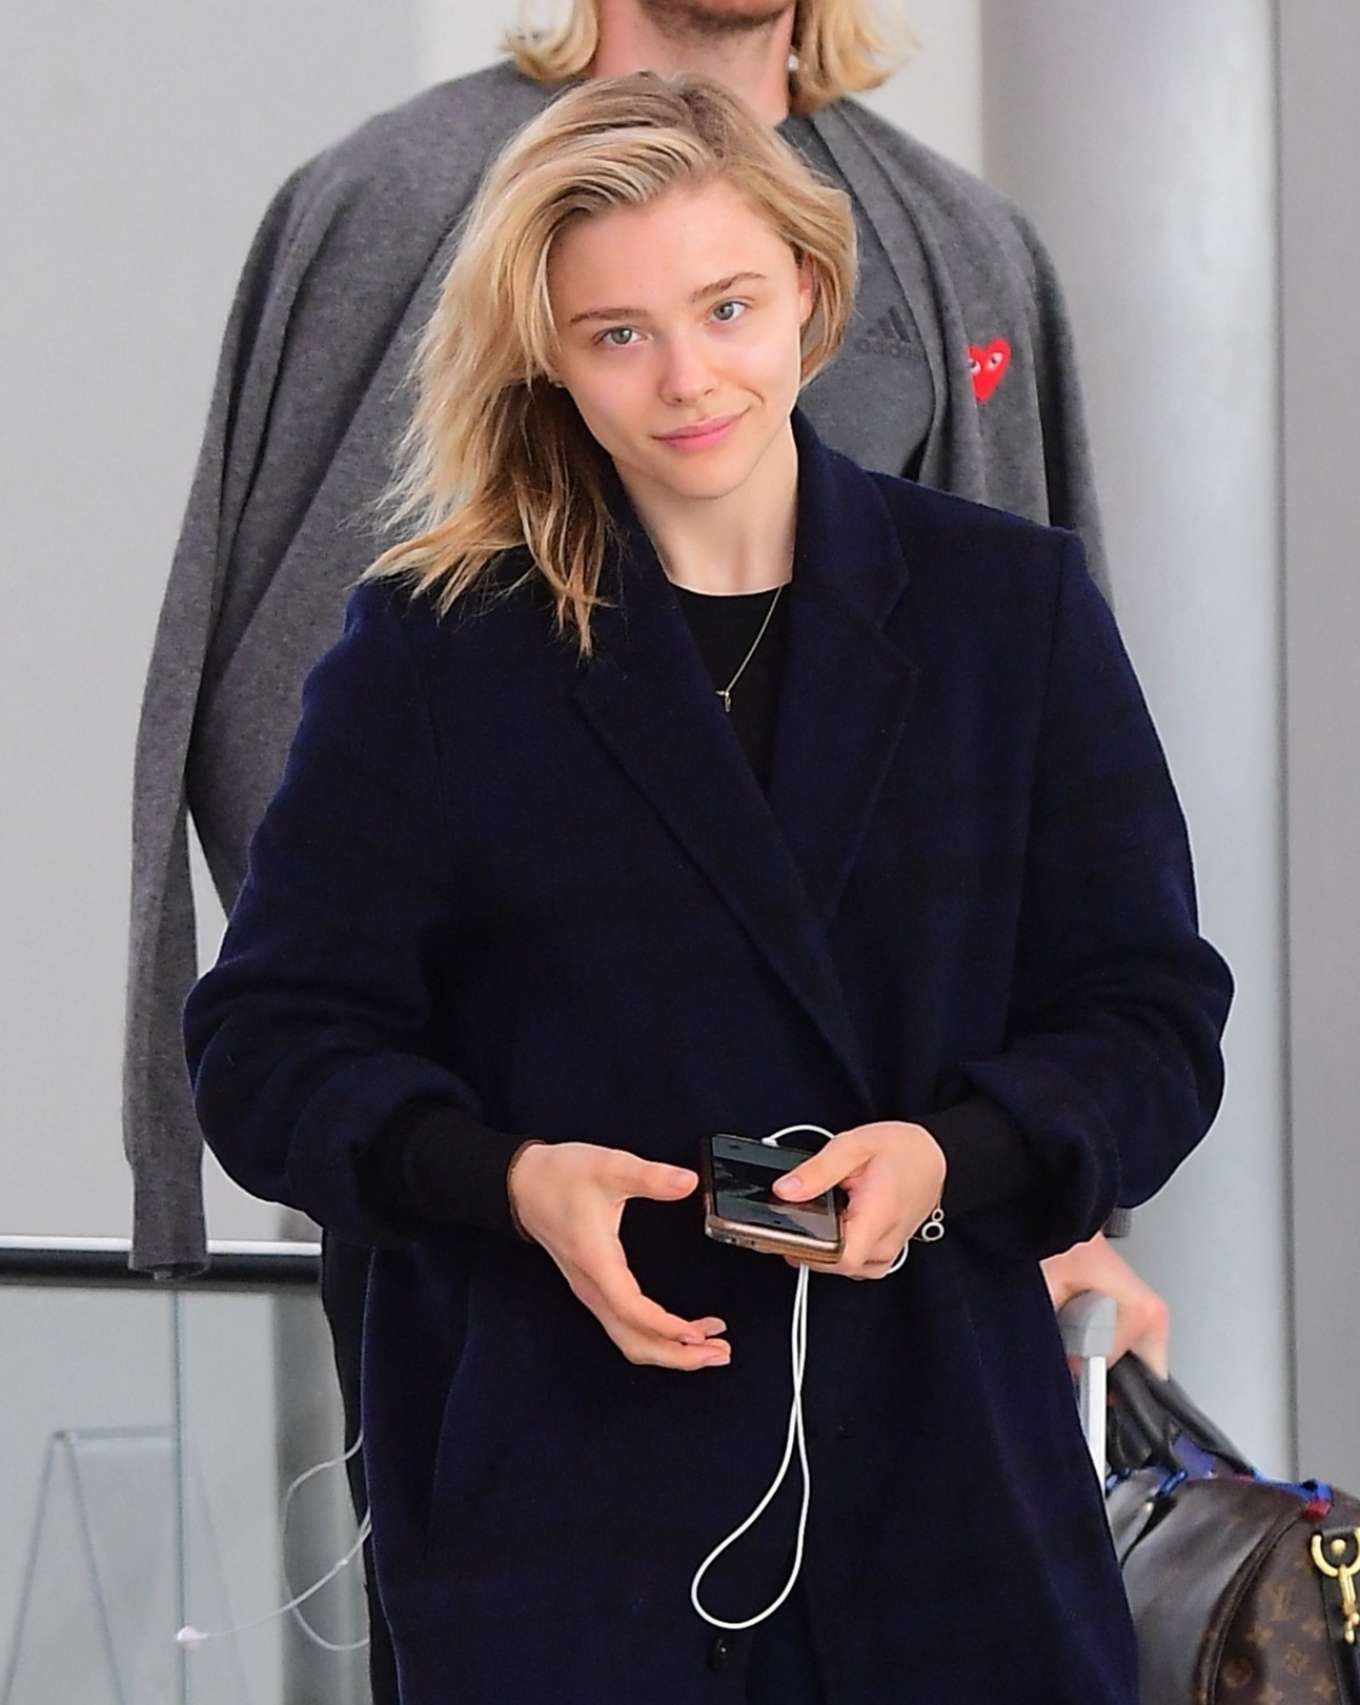 Chloe Grace Moretz - Seen at Newark Airport in New York